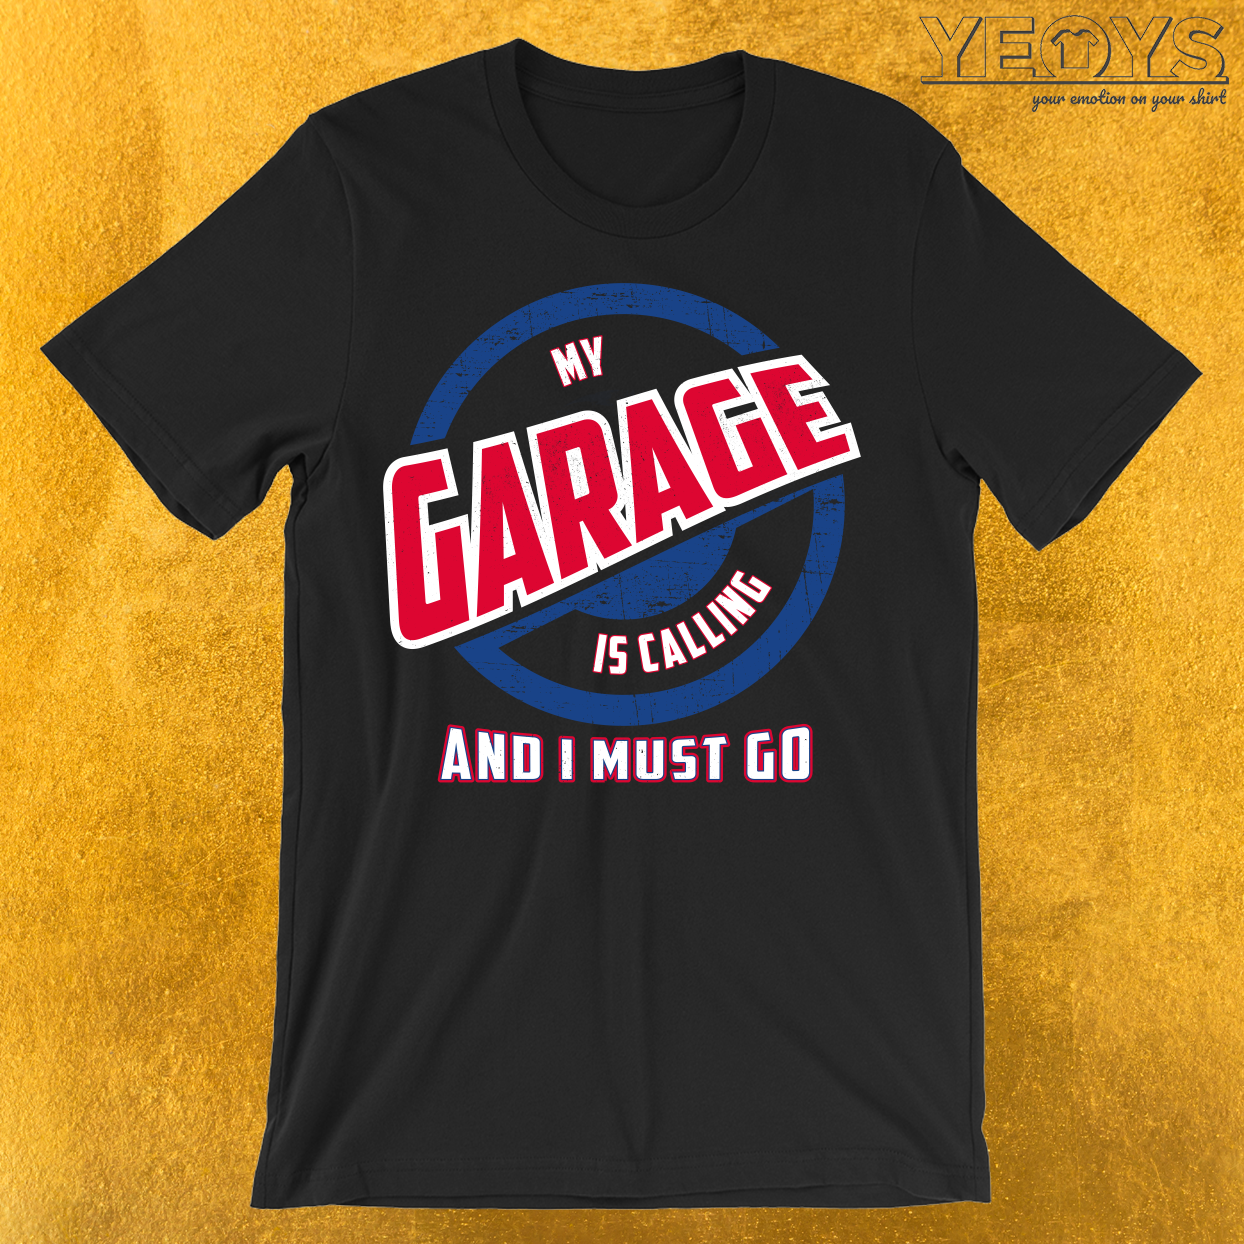 My Garage Is Calling And I Must Go T-Shirt